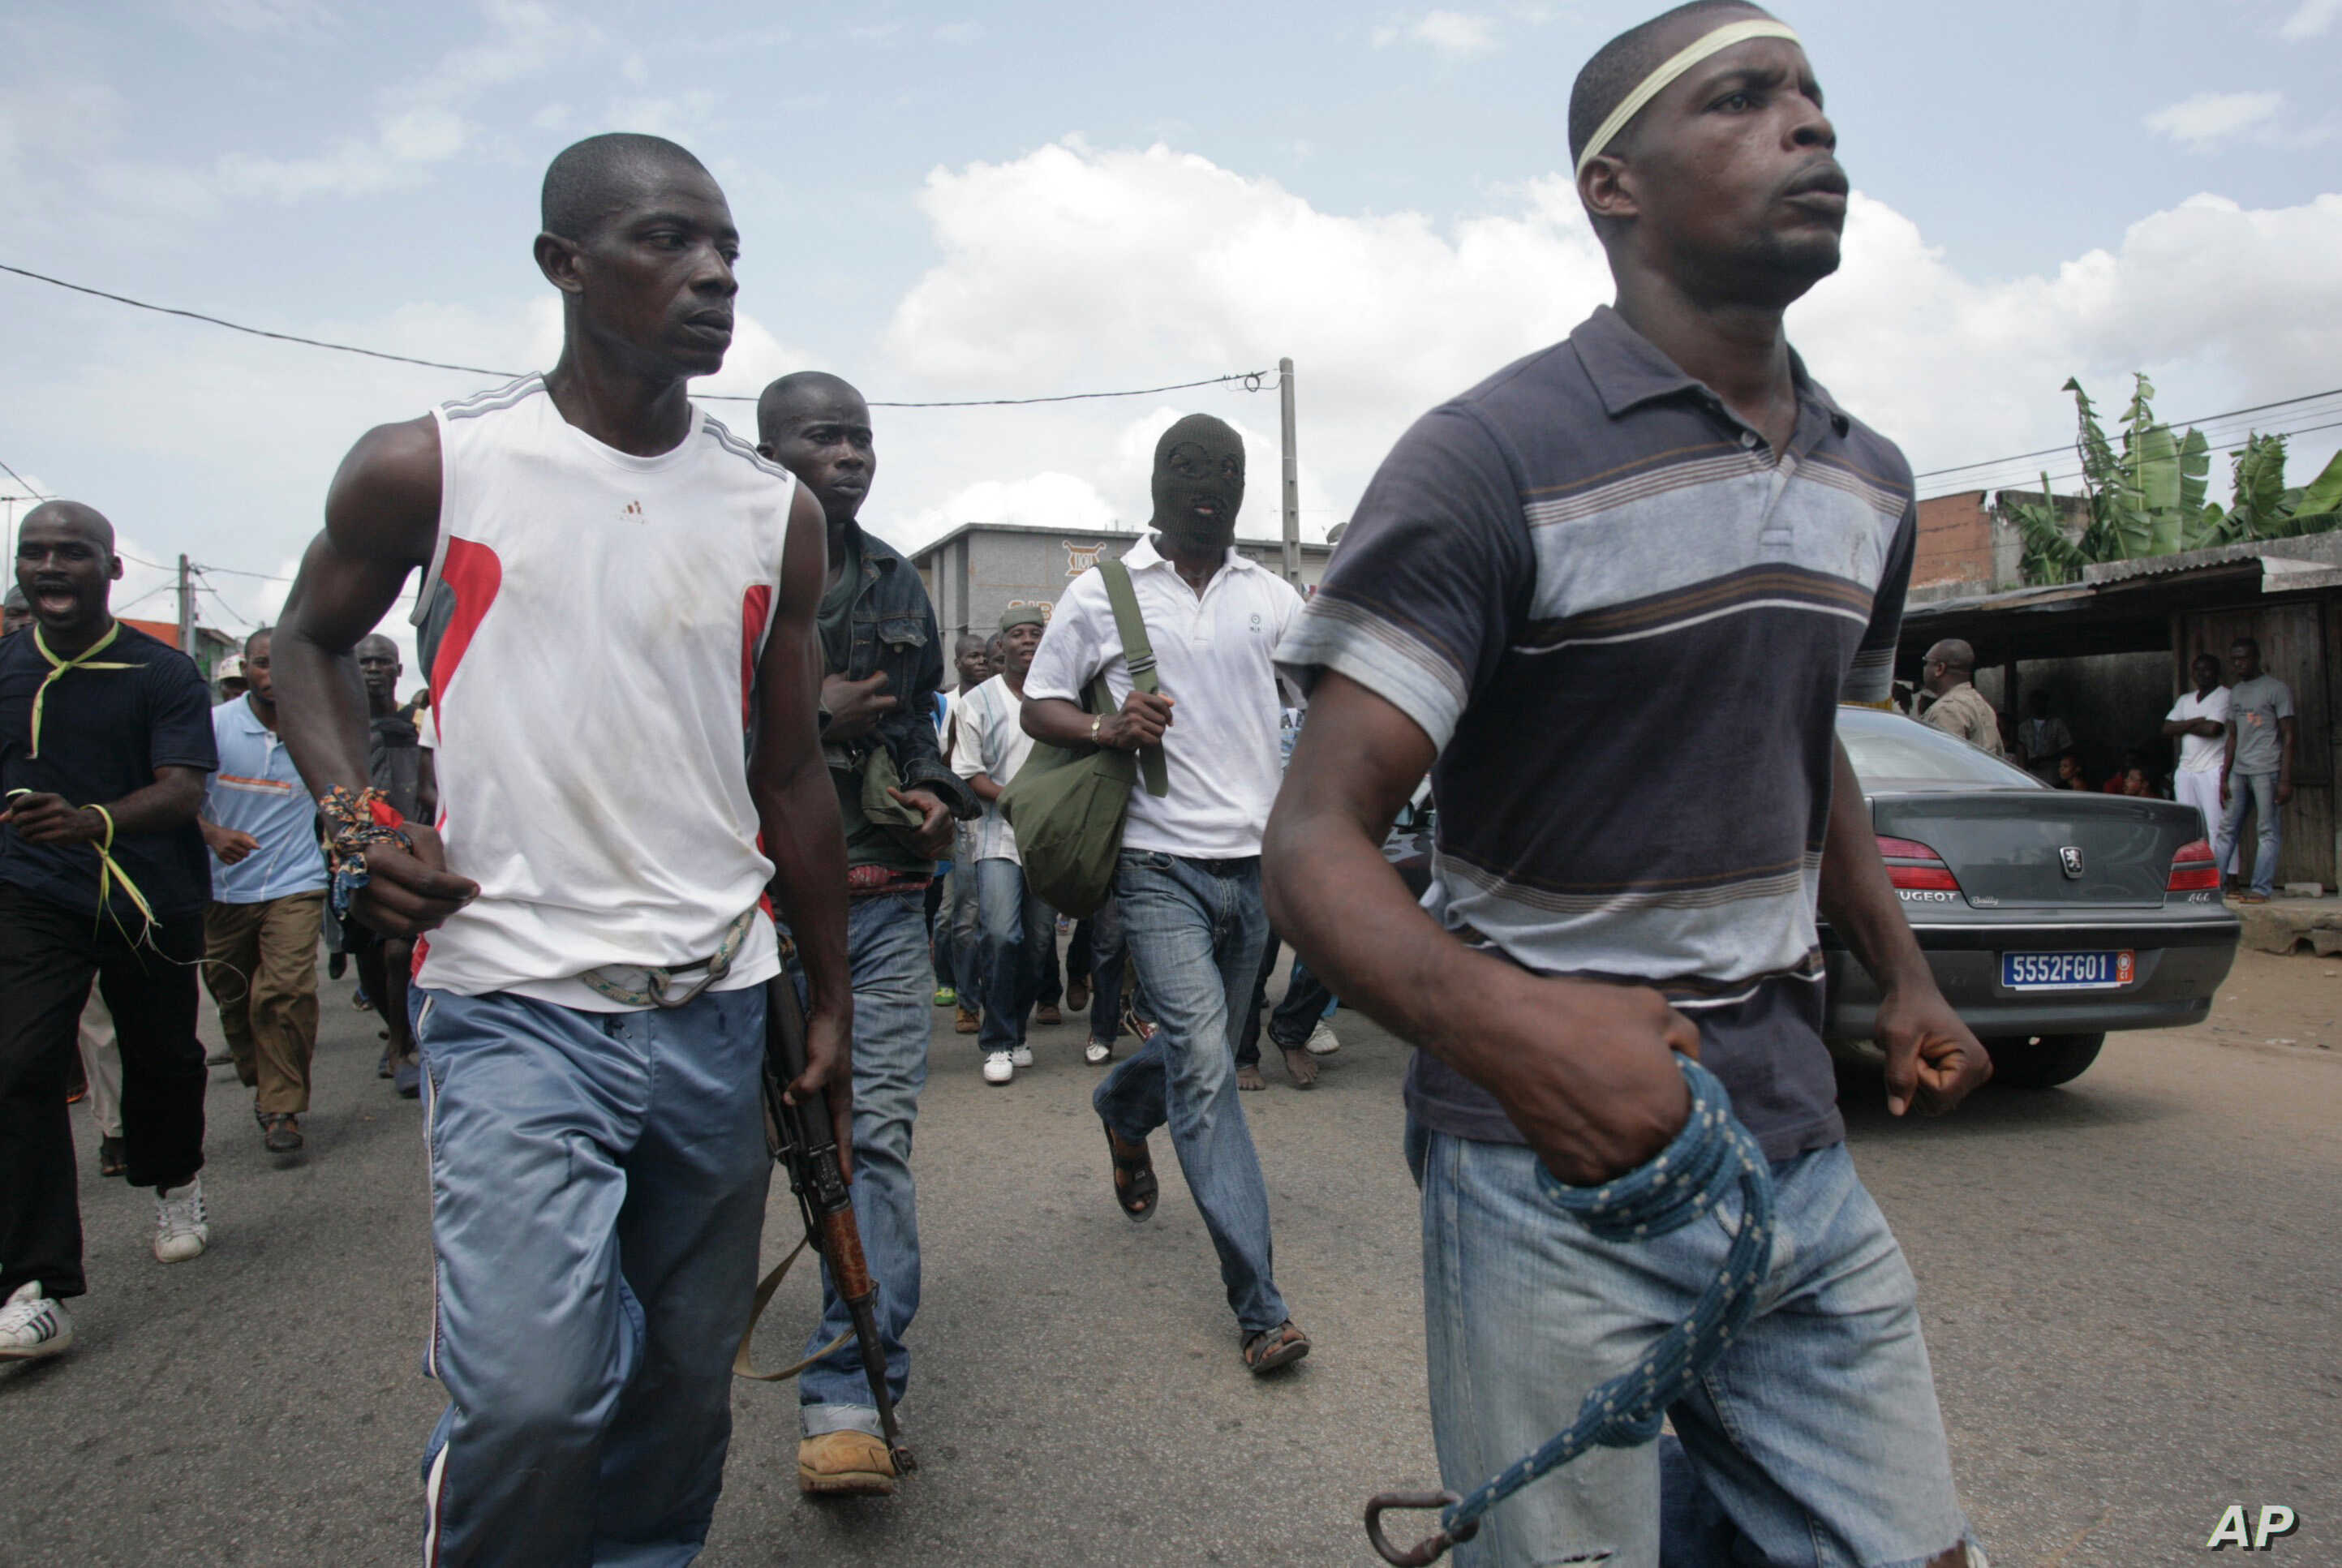 FILE - Youths loyal to Laurent Gbagbo carry homemade weapons and a gun as they heed a call from youth leader Charles Ble Goude, not pictured, to form 'self-defense' units to protect against rebels, in the Youpougon district of Abidjan, Ivory Coast, F